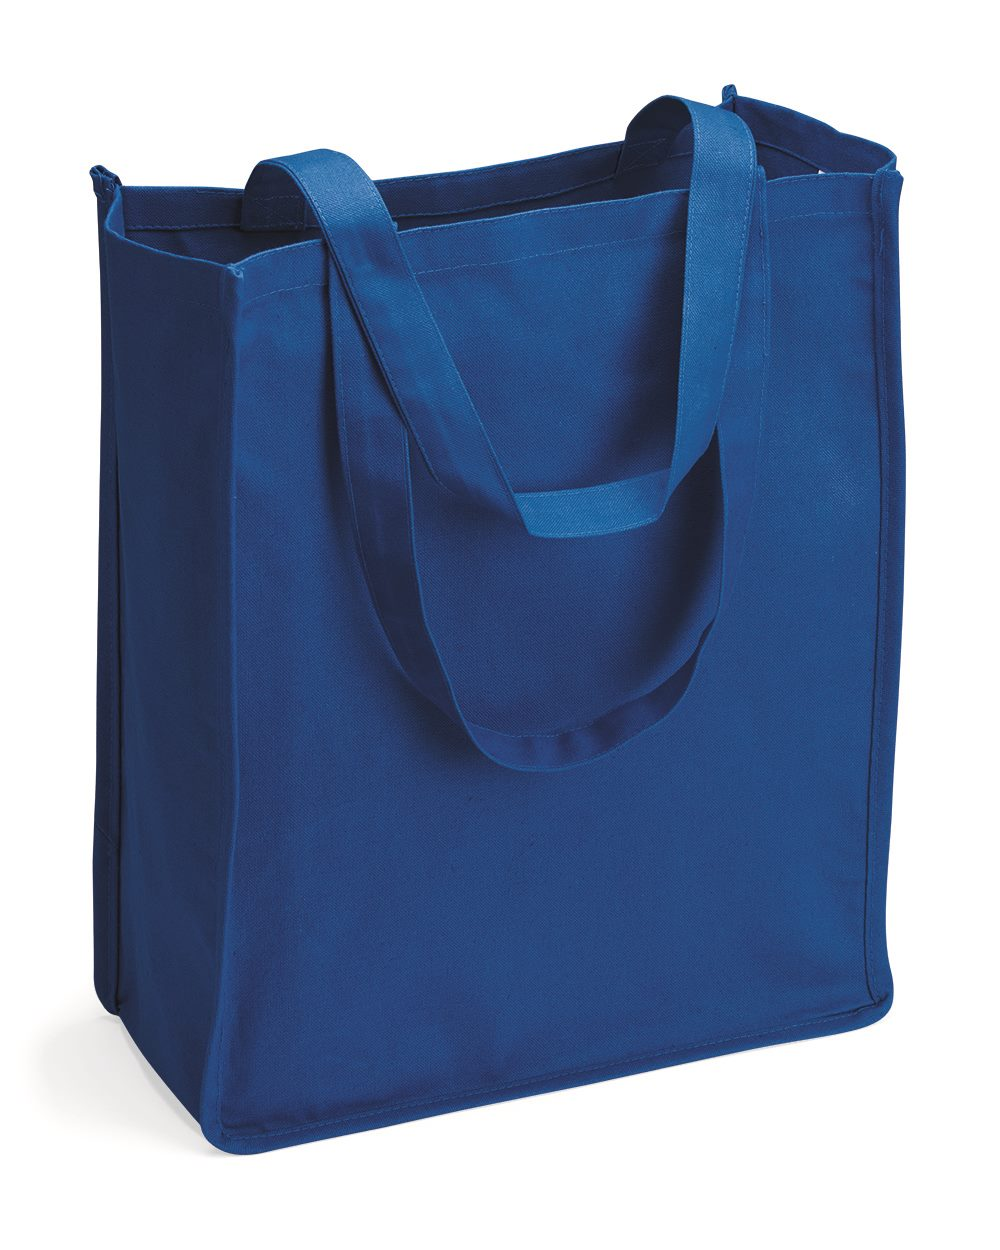 Q-Tees Q125400 - 27.3L Gusseted Jumbo Canvas Shopper